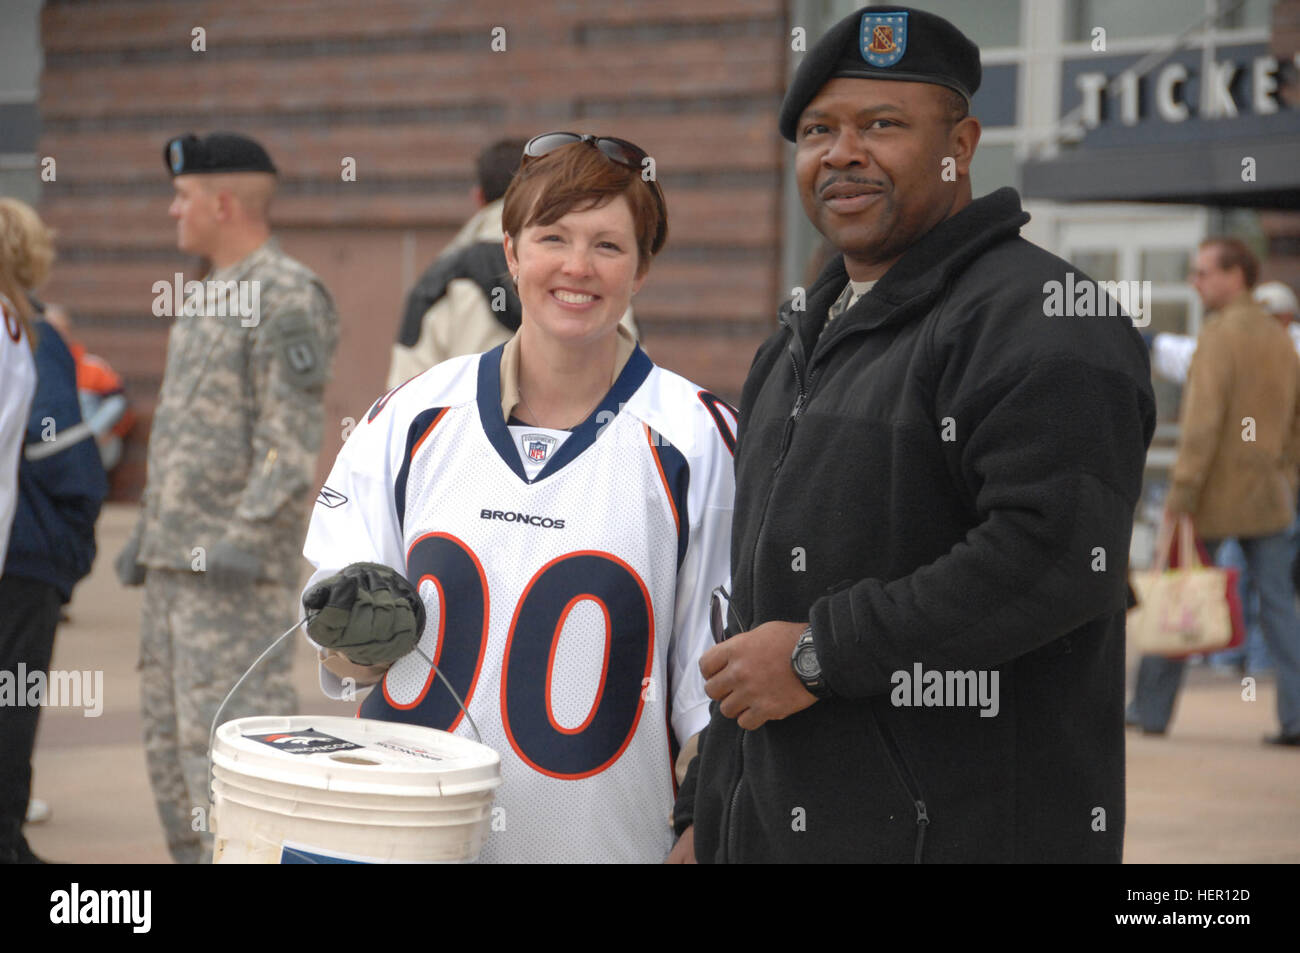 DENVER - Staff Sgt. Larry Winters of the Colorado Army National Guard and Ande Comeau, a volunteer for the Broncos' - Stock Image